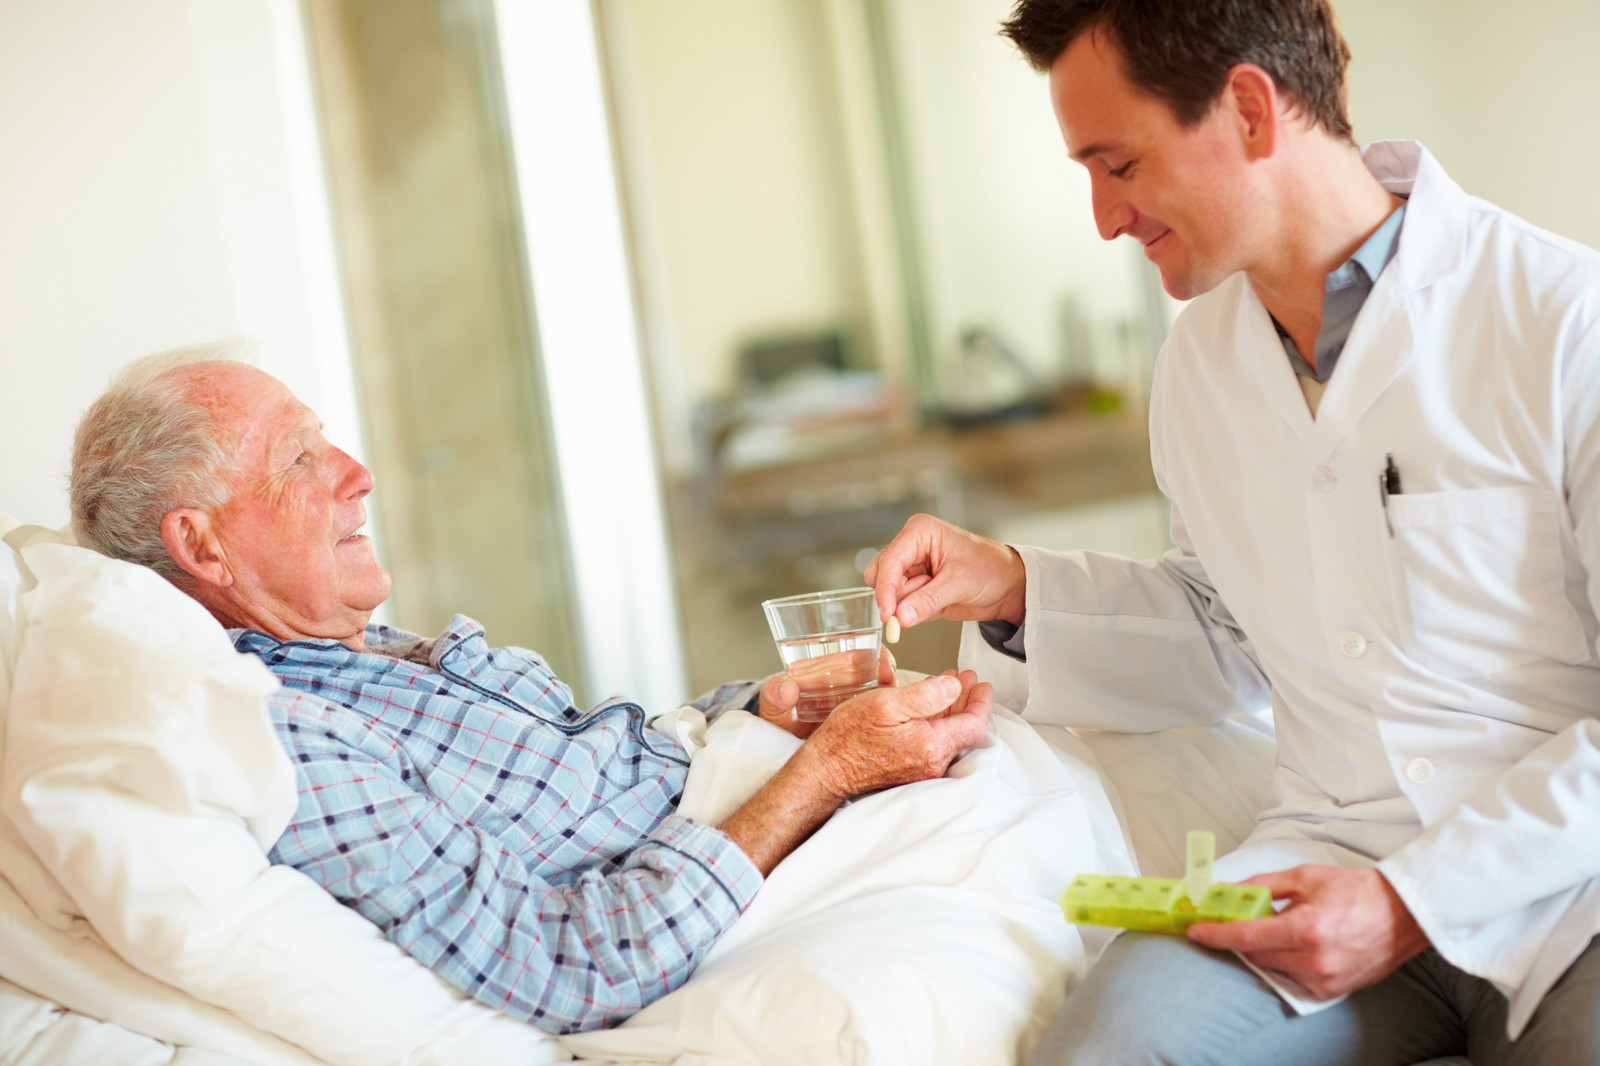 elderly and ER hospitalization, medication side effects